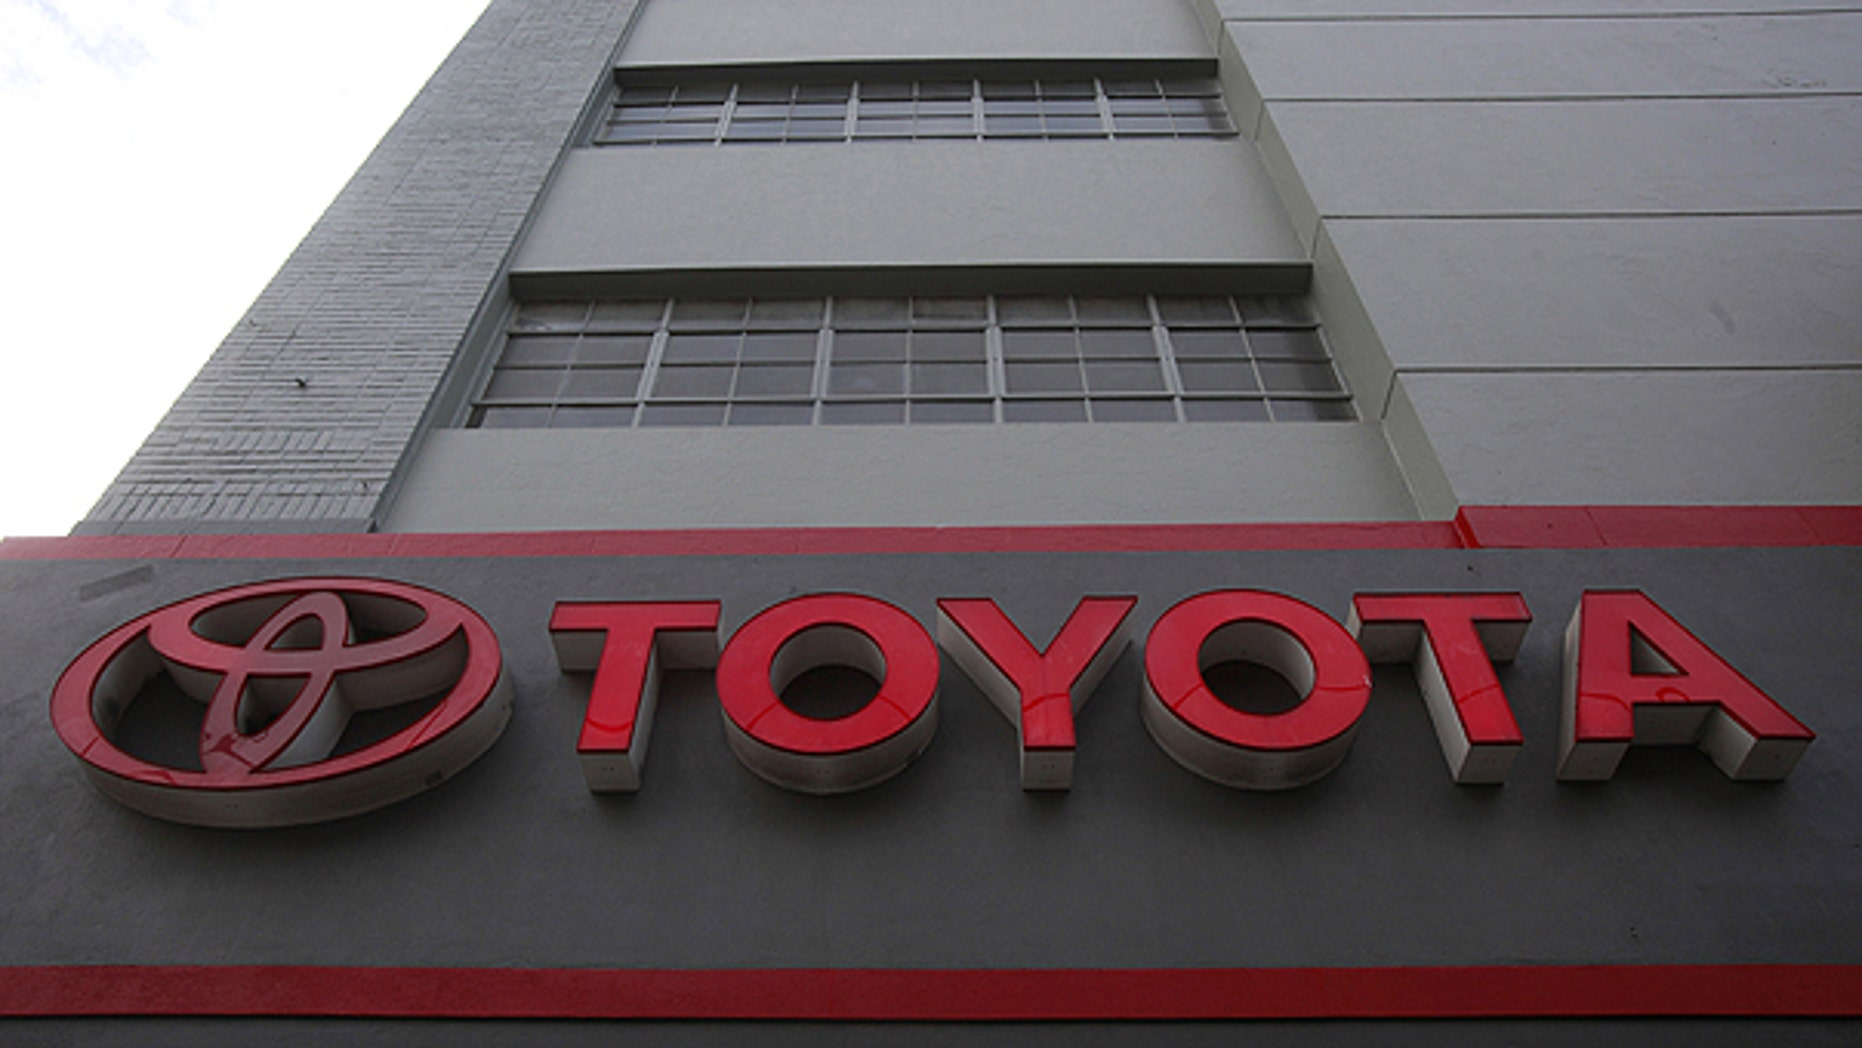 The sign at San Francisco Toyota car dealership is shown in San Francisco, in this Jan. 26, 2010 file photo. Toyota Motor Corp. said Thursday Oct. 21 it is recalling 1.53 million Lexus, Avalon and other models, mostly in the U.S. and Japan, for brake fluid and fuel pump problems.